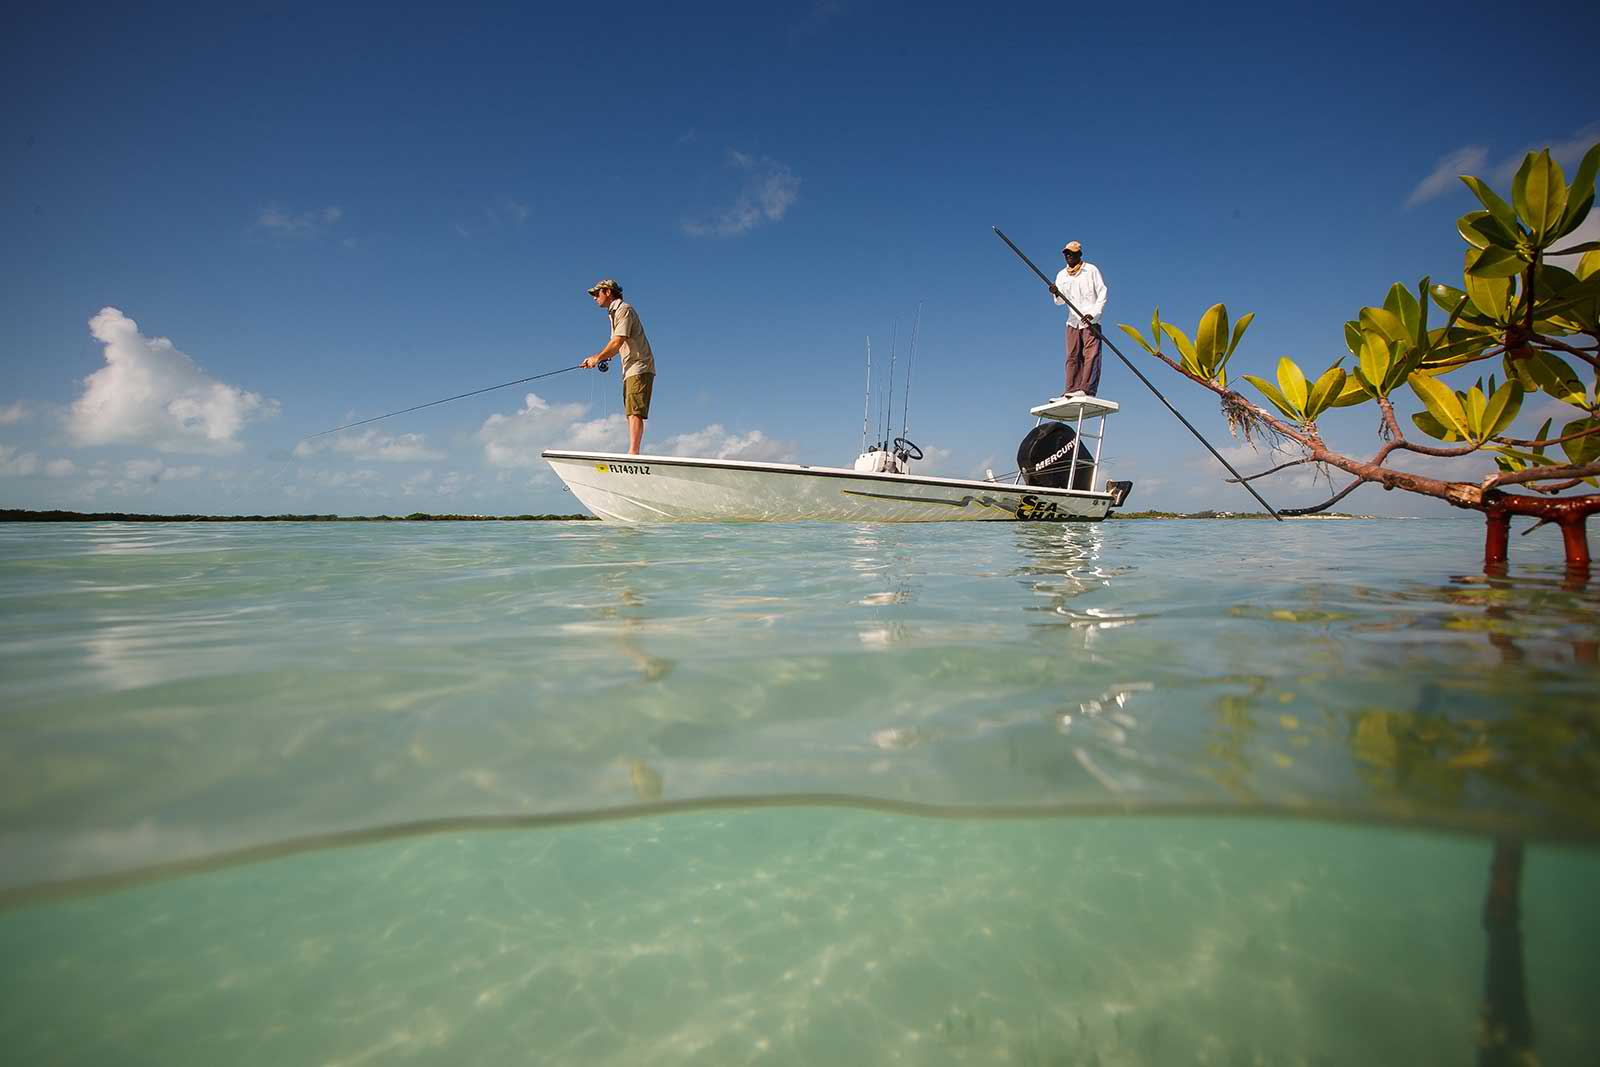 Ever tried bonefishing in turks and caicos turks and for Turks and caicos fishing